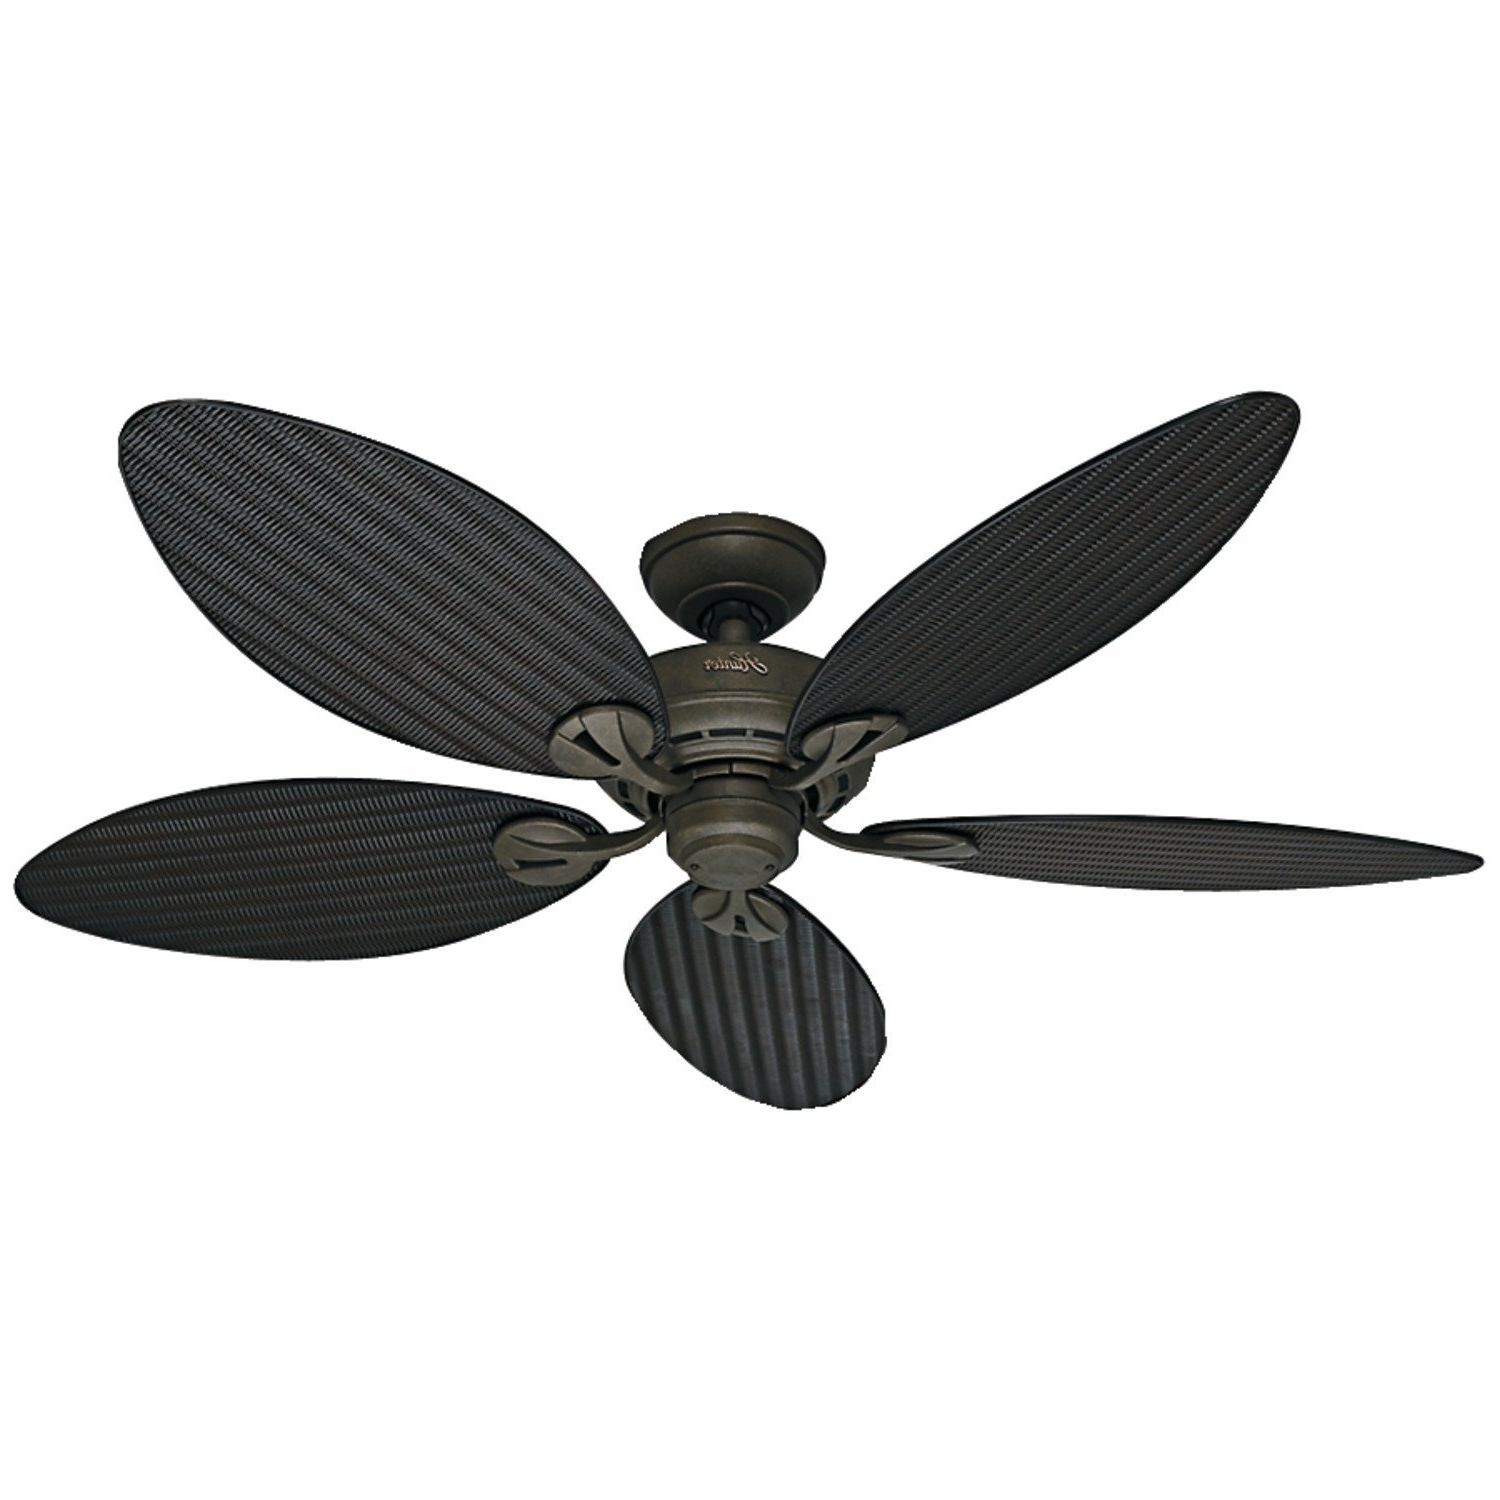 2018 Ceiling: Marvellous Ceiling Fans With Leaf Shaped Blades Wicker With Regard To Outdoor Ceiling Fans With Plastic Blades (View 1 of 20)